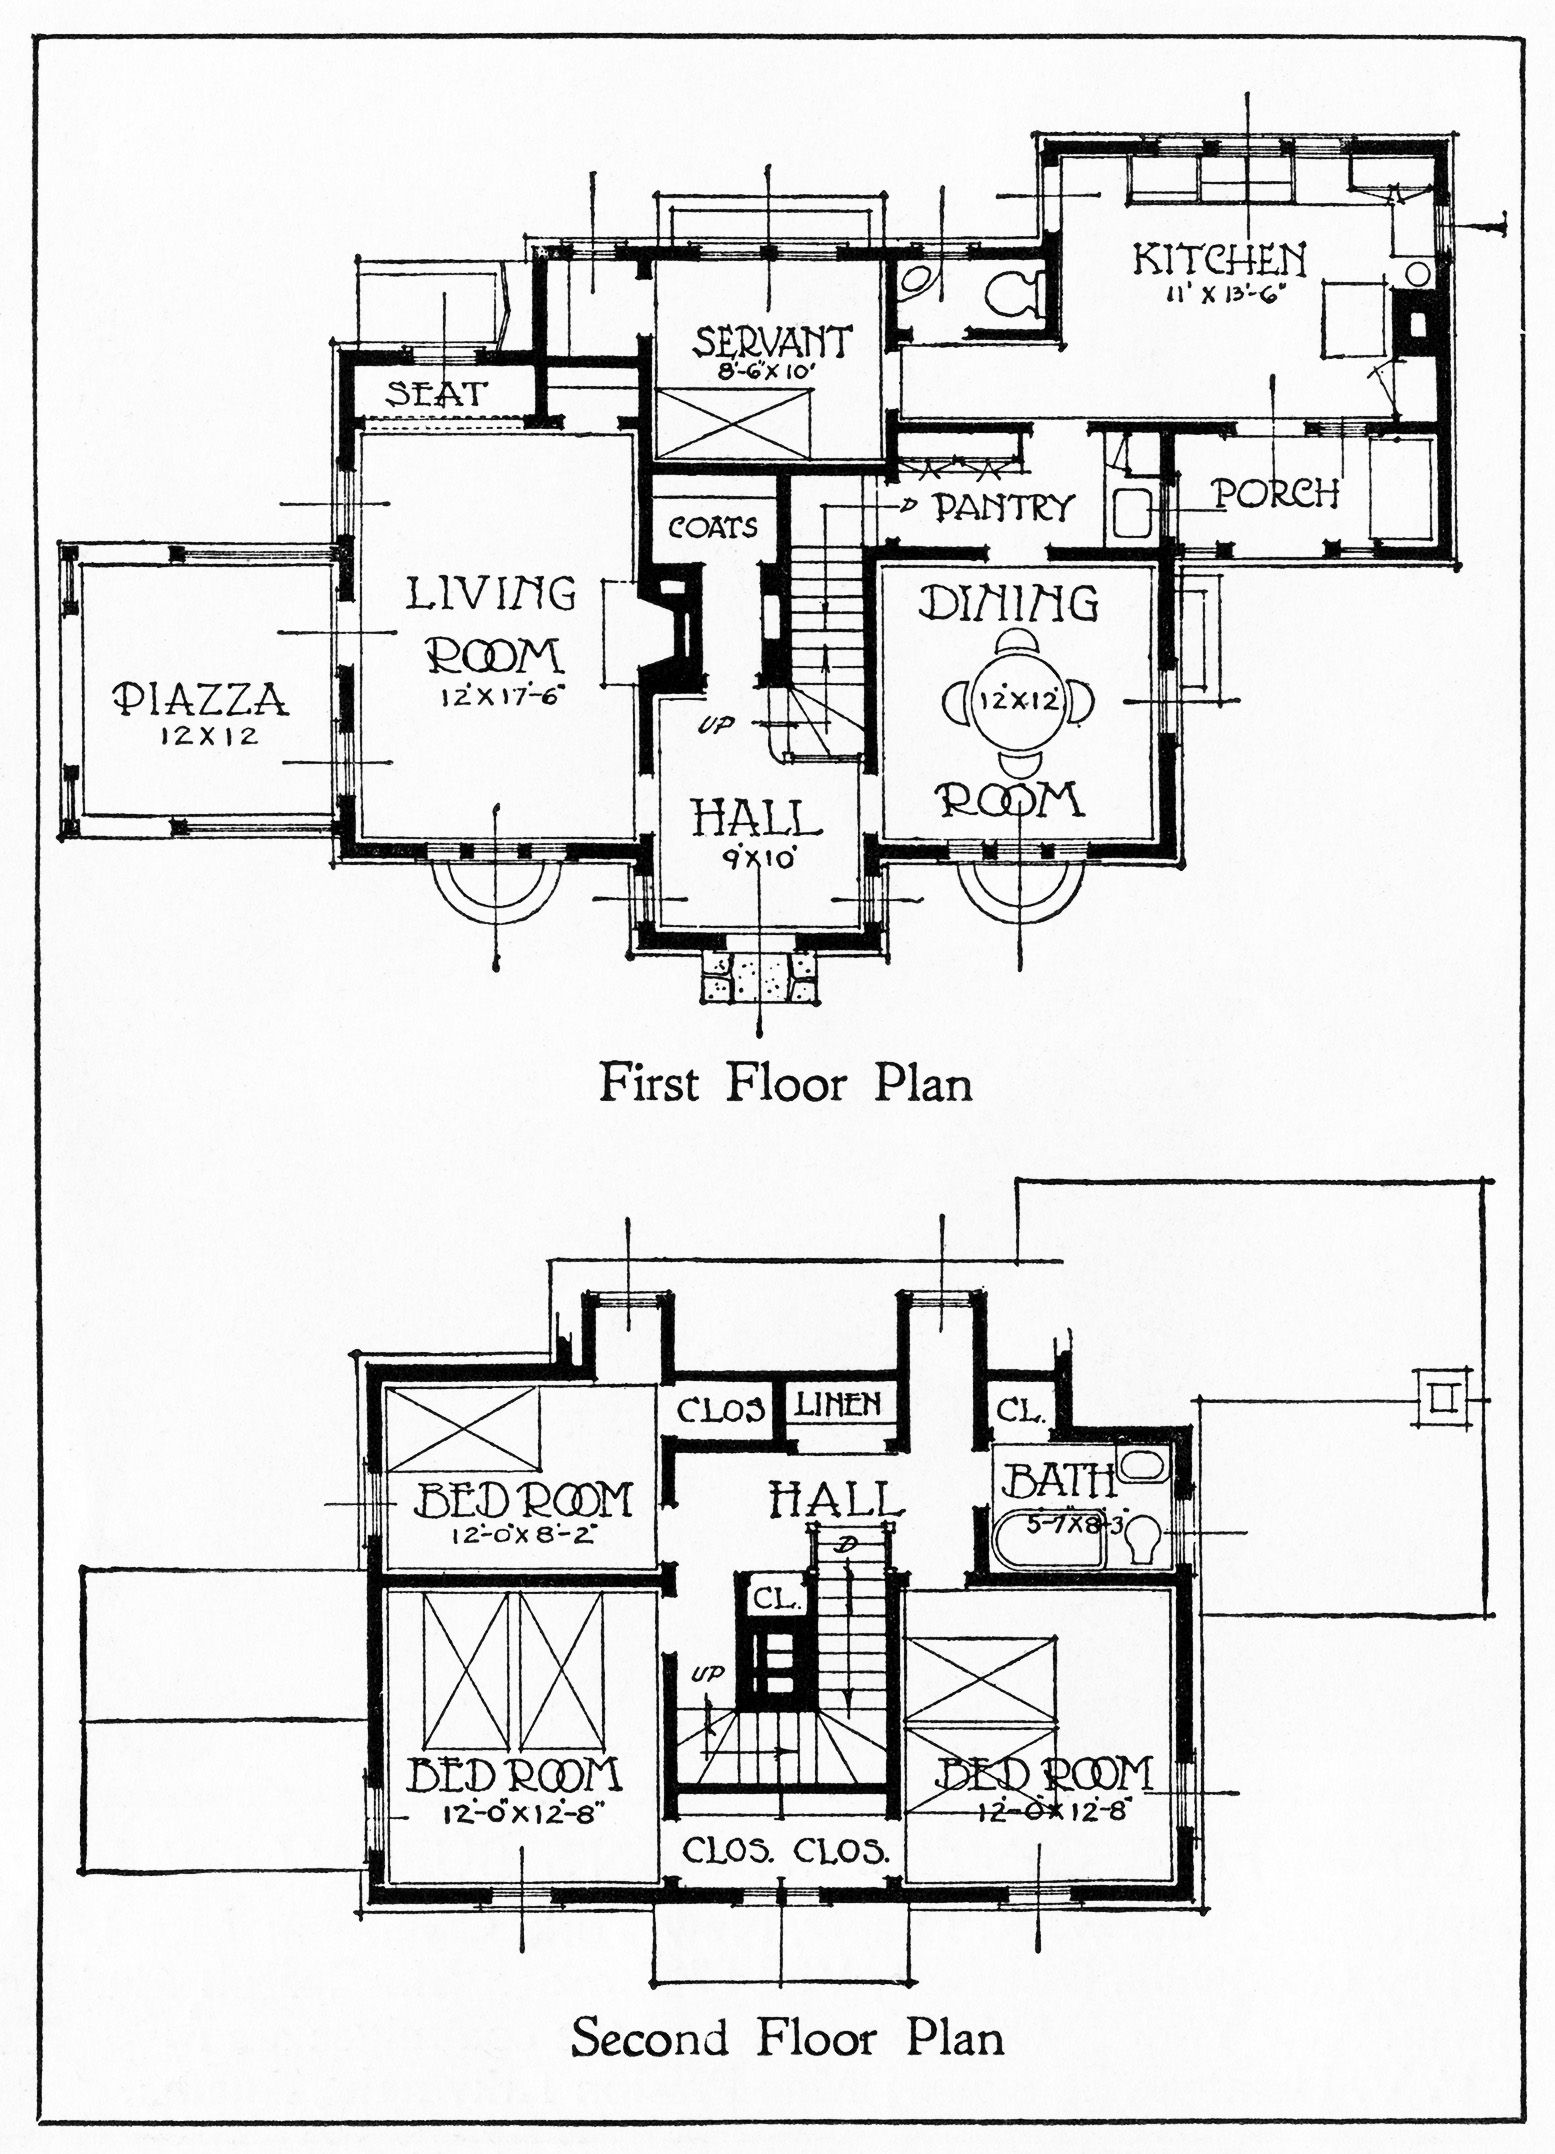 Old Homes House Plans Old Free Printable Images House Plans